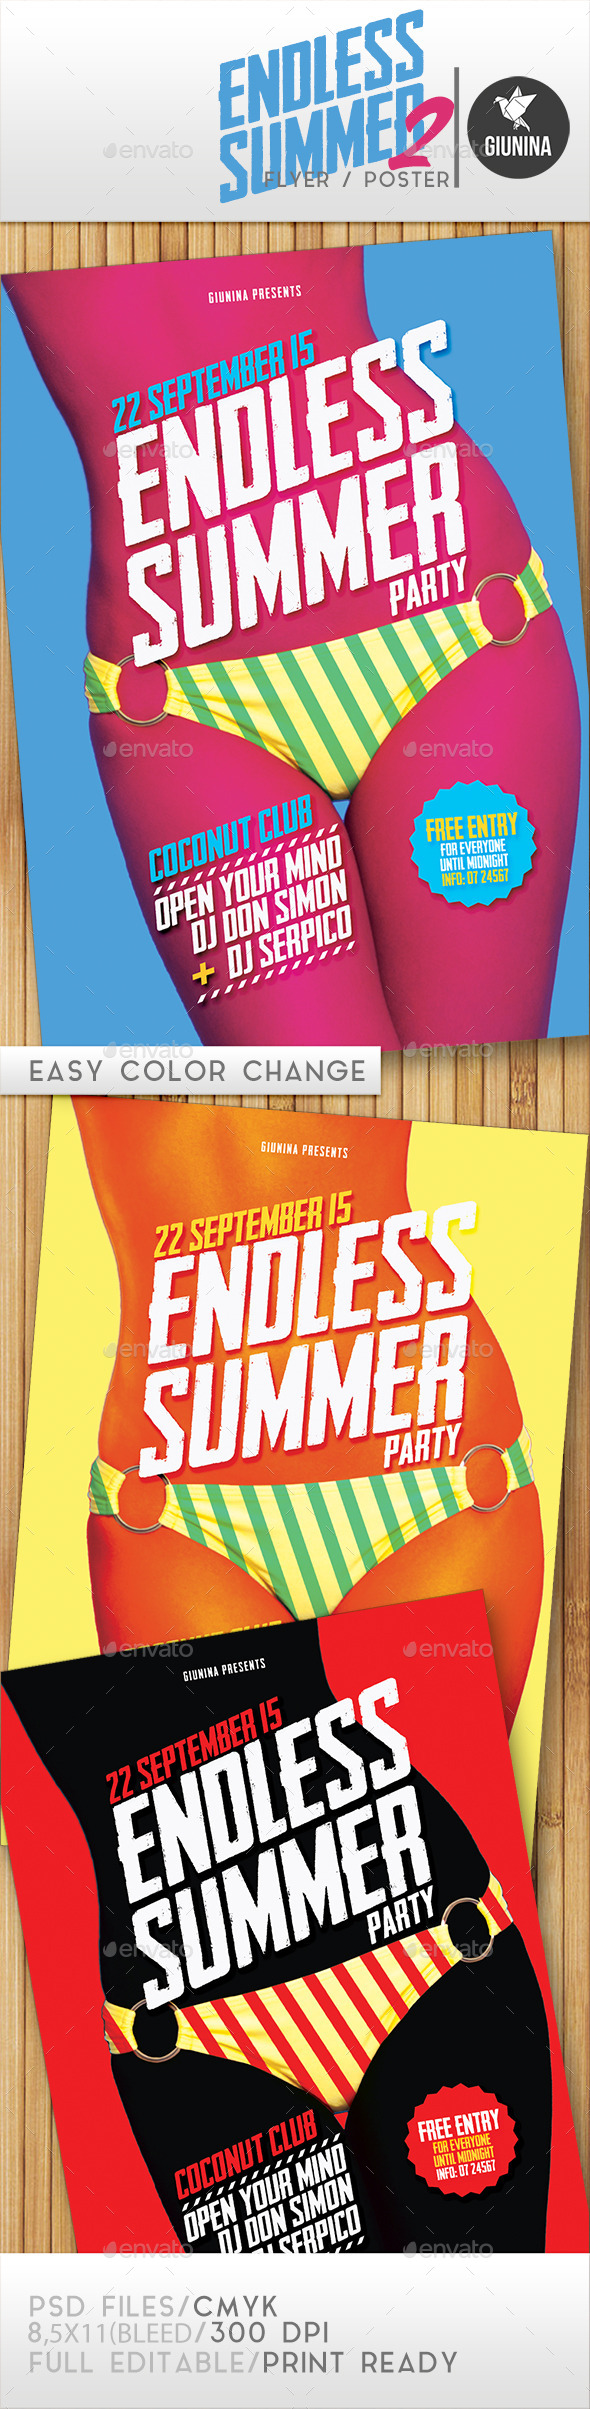 Endless Summer 2 Flyer/Poster - Events Flyers